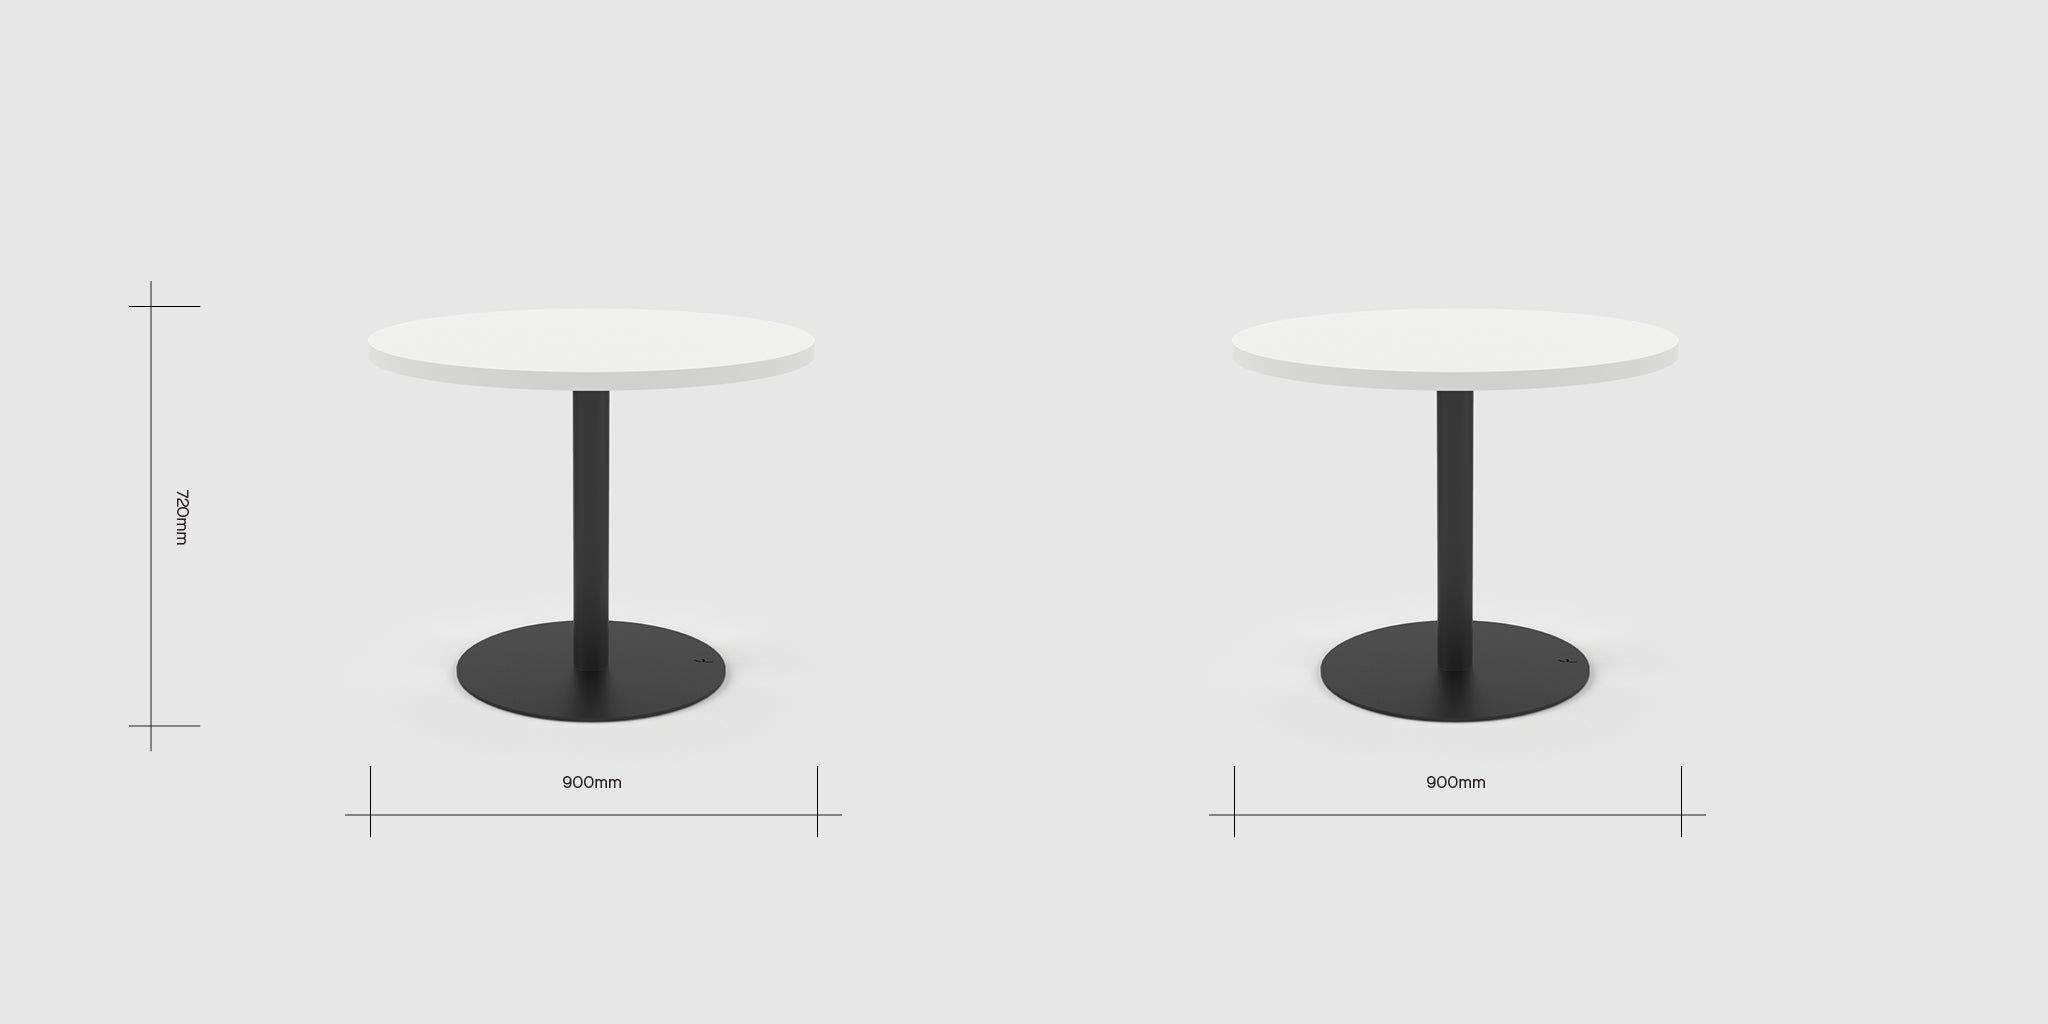 Disc 3 Person Table Dimensions